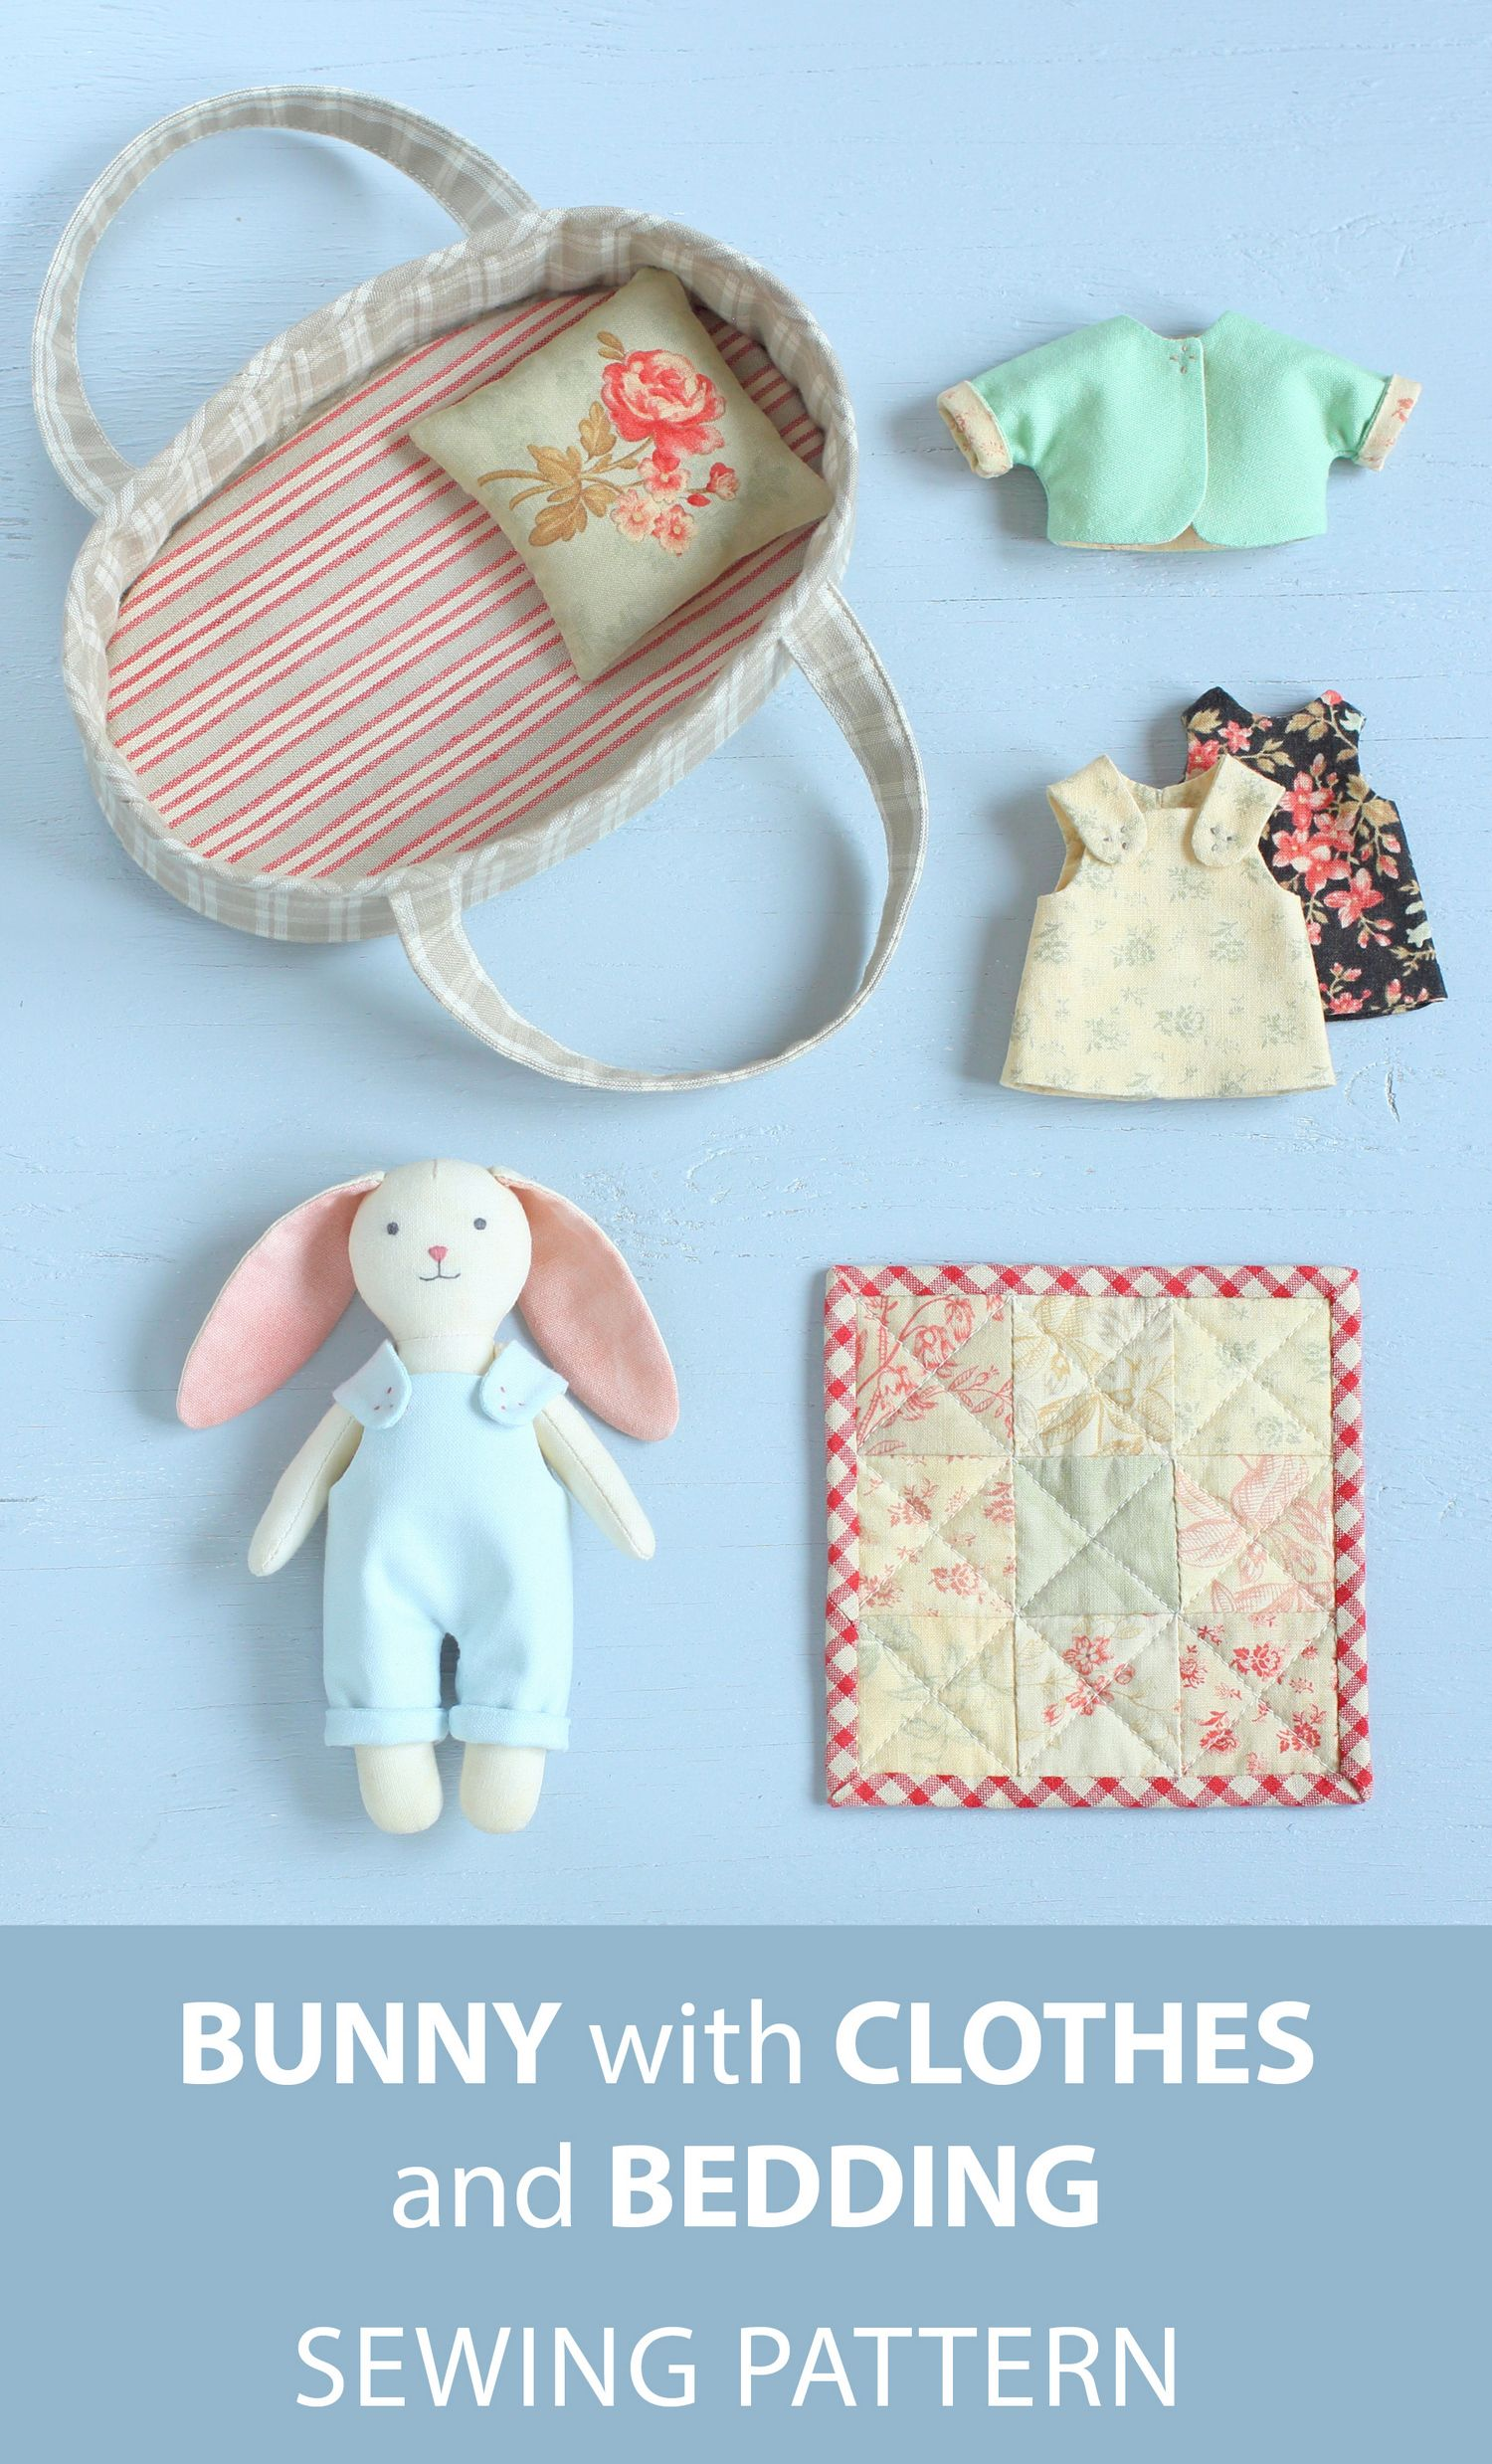 2 PDF: Mini Bunny with Set of Clothes + Basket with Bedding Sewing Pattern — DIY Animal Stuffed Doll, Soft Toy, Dress up Doll, Rabbit Doll #sewingtoys